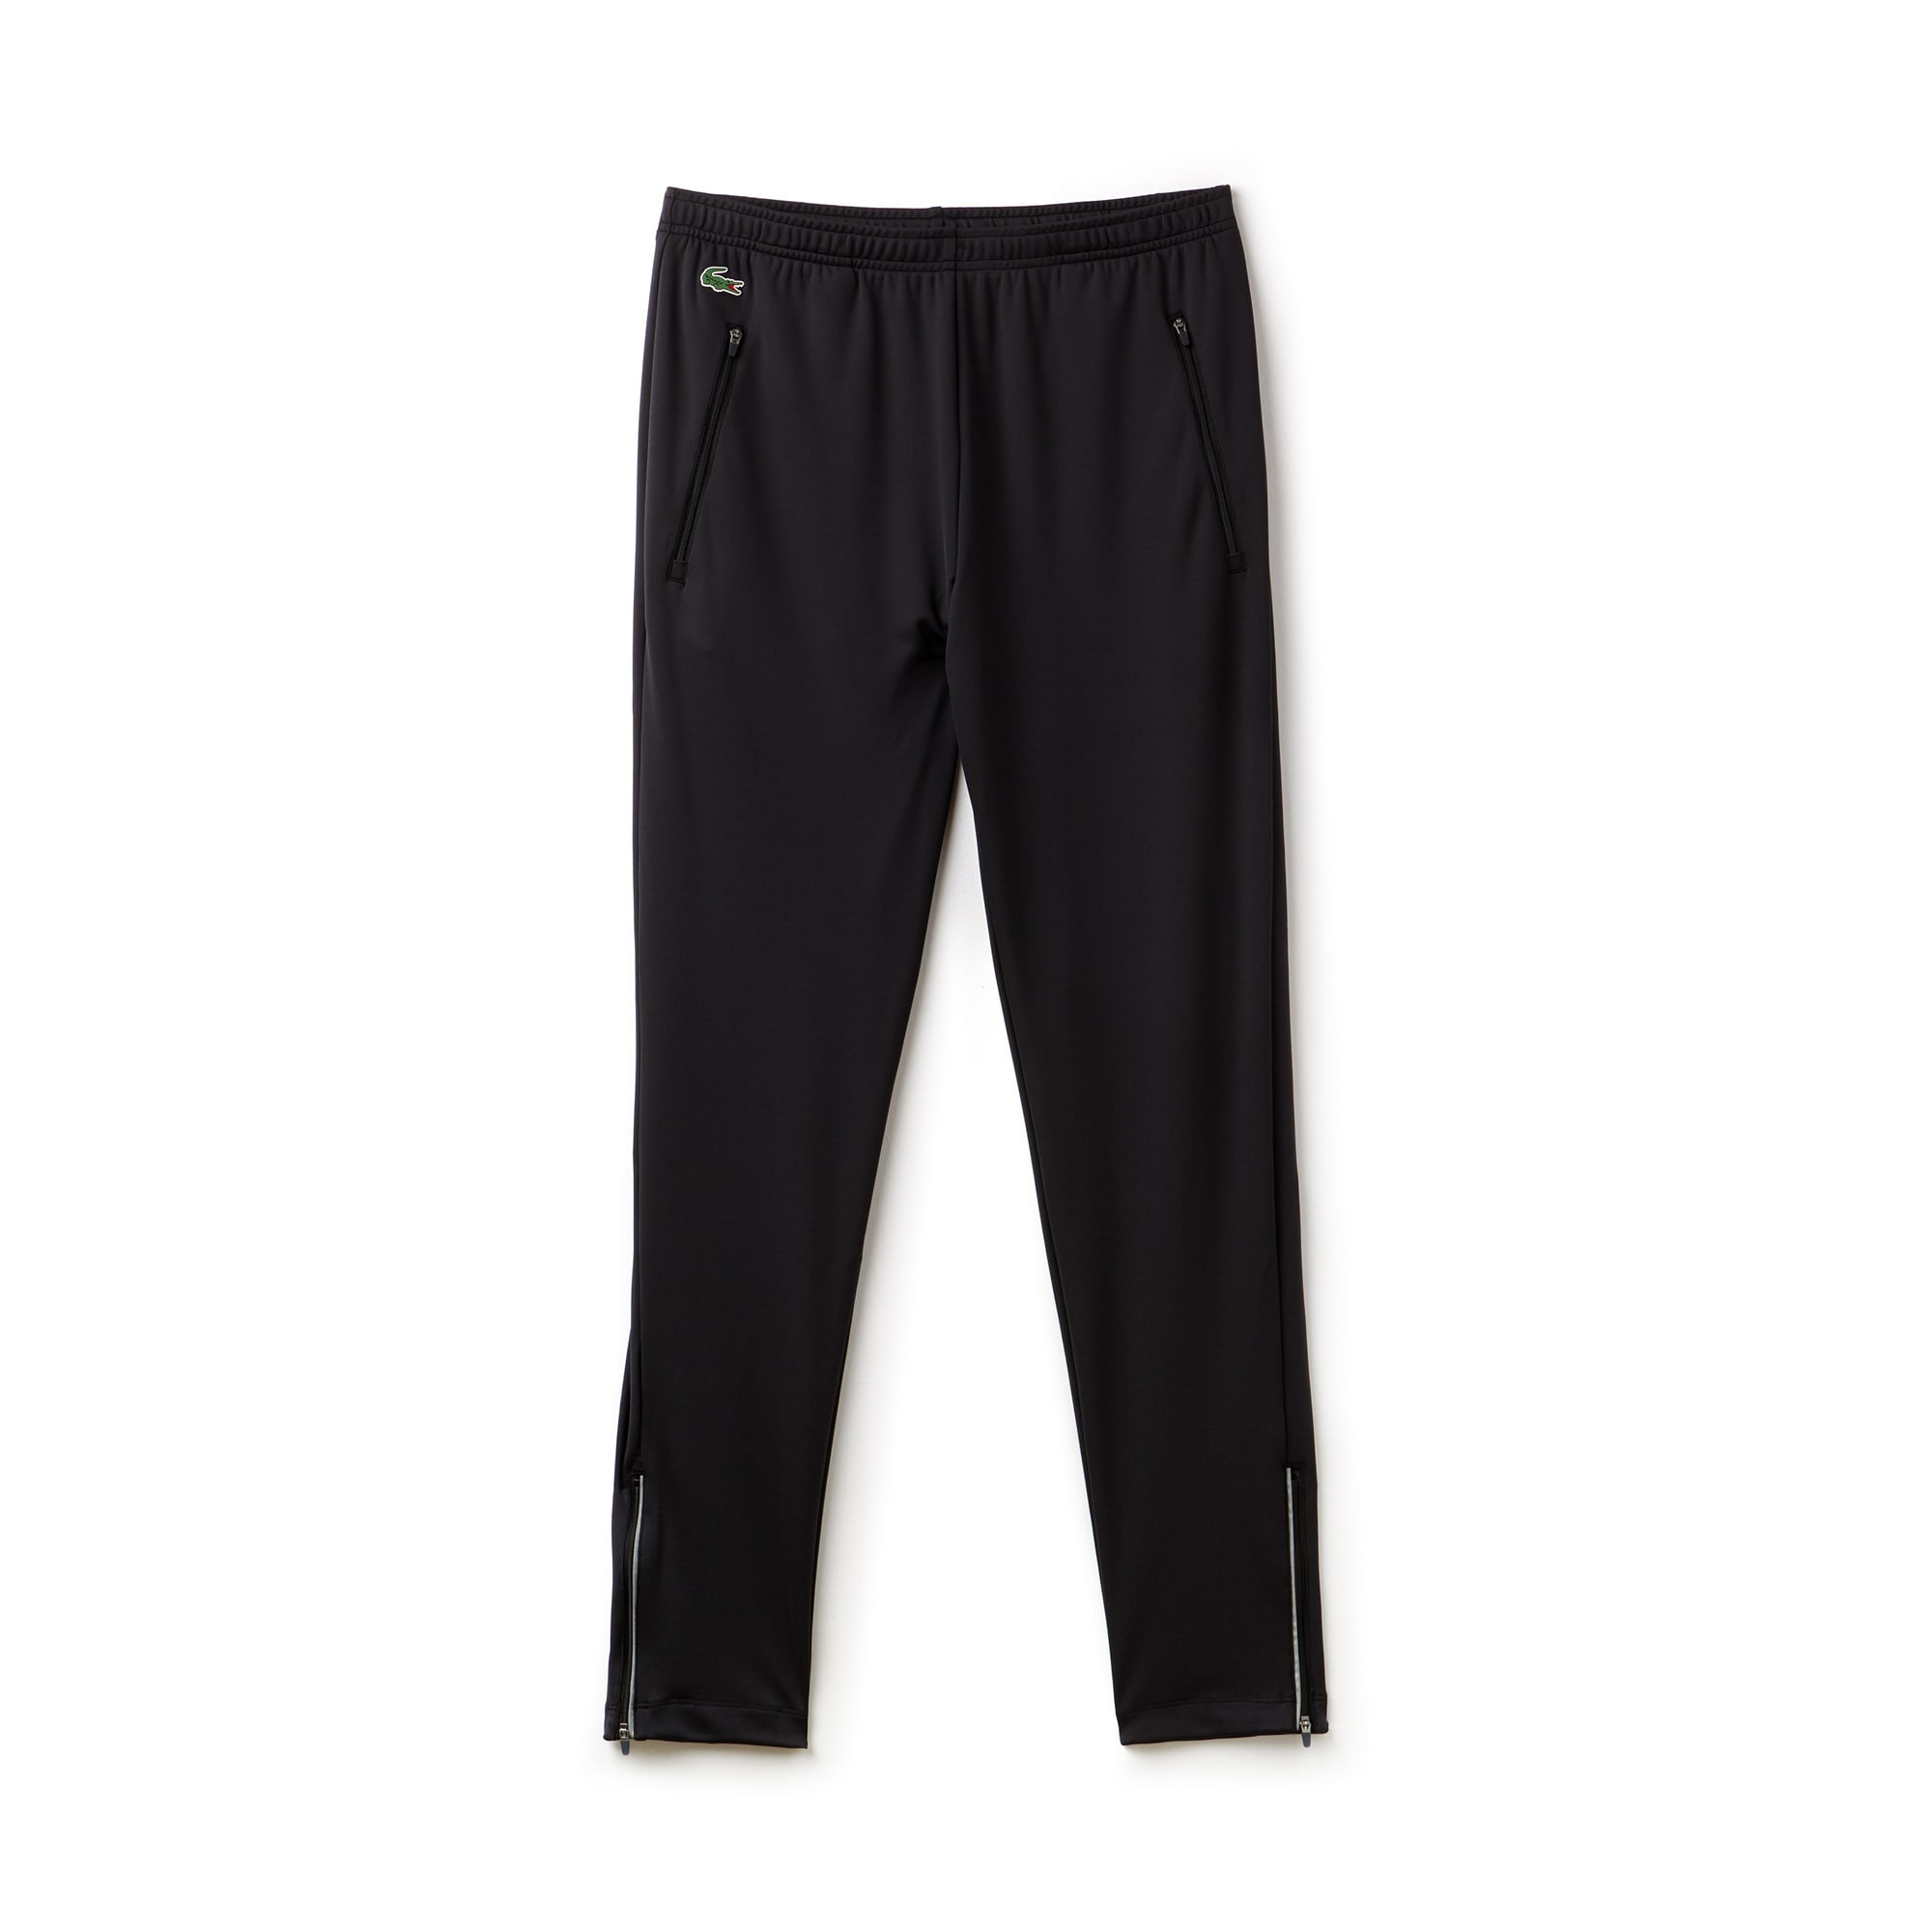 Herren-Trackpants mit Stretch SPORT NOVAK DJOKOVIC Kollektion